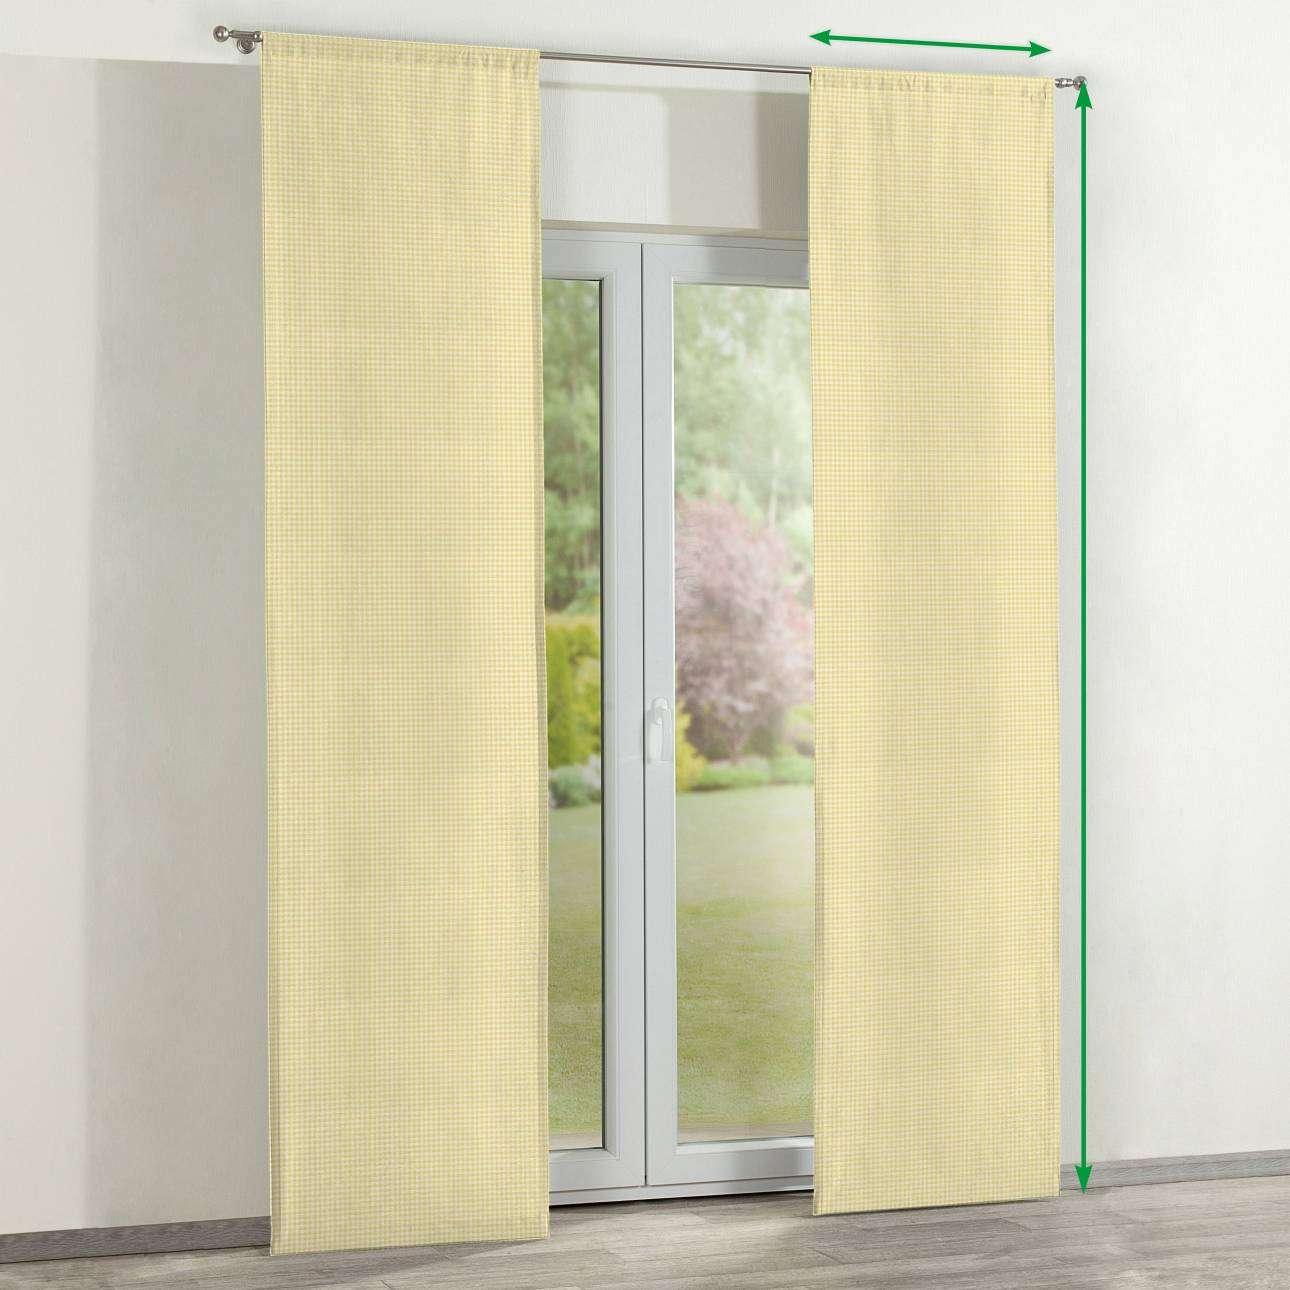 Slot panel curtains – Set of 2 in collection Ashley, fabric: 137-64